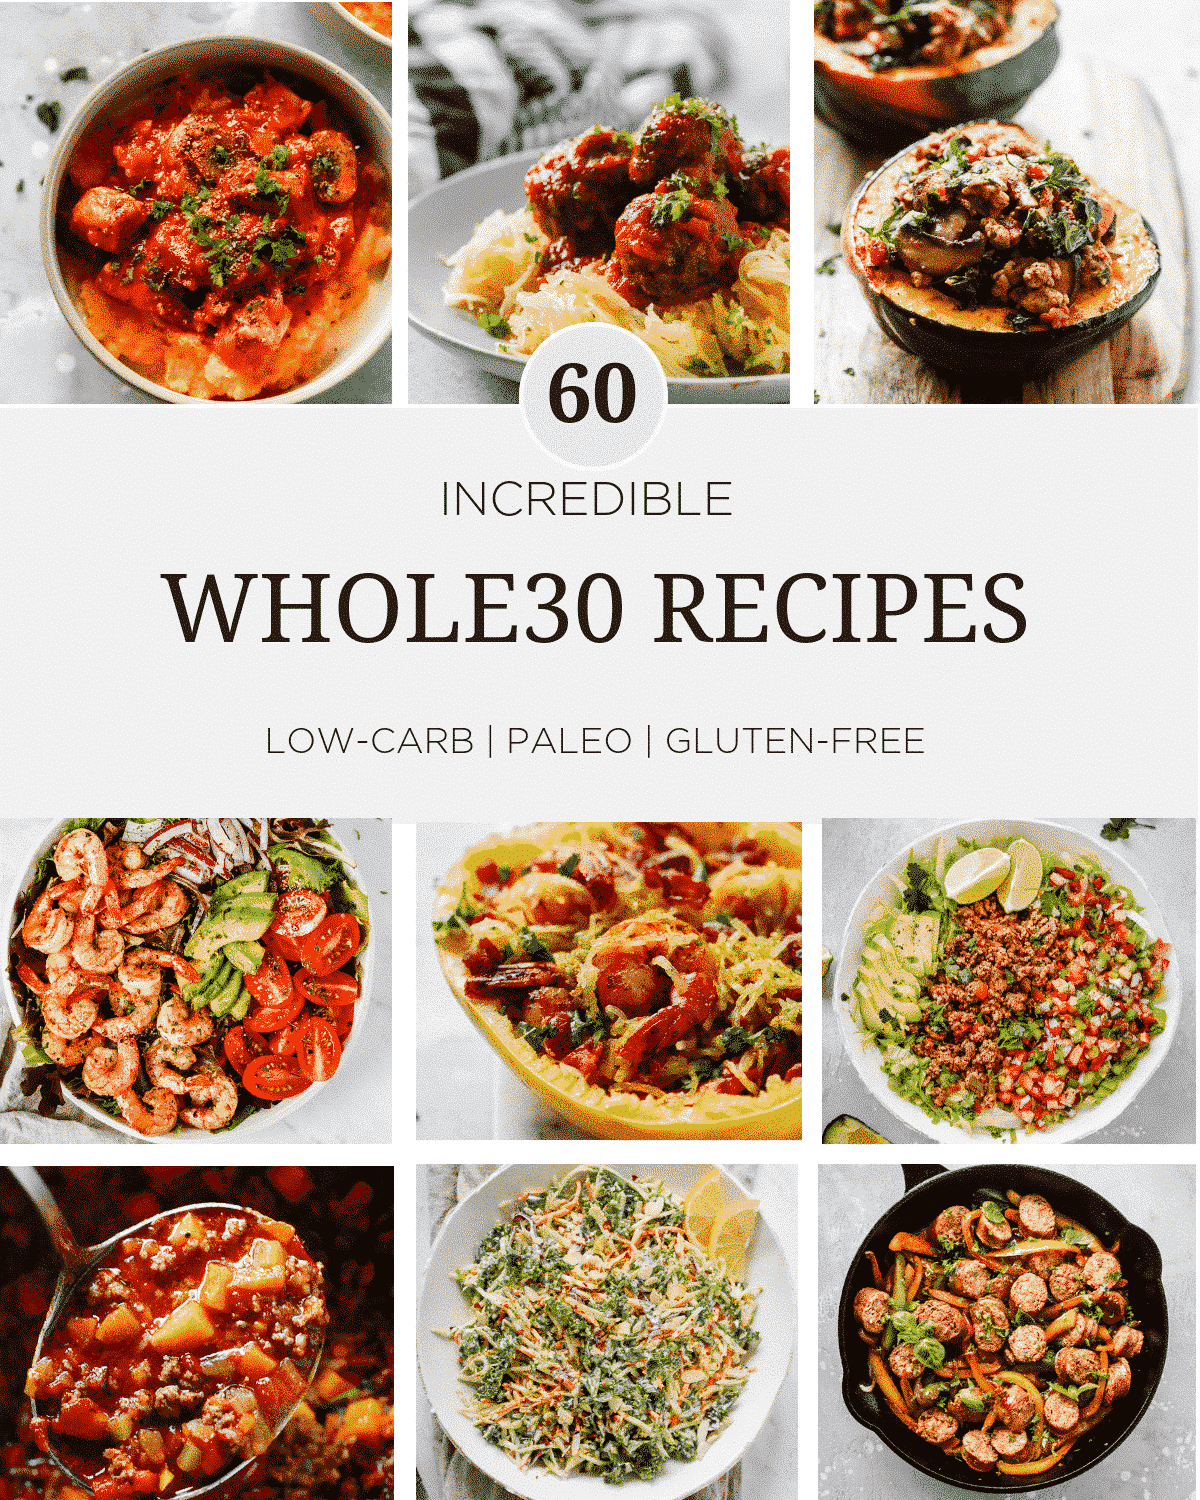 60 Incredible Whole30 Recipes